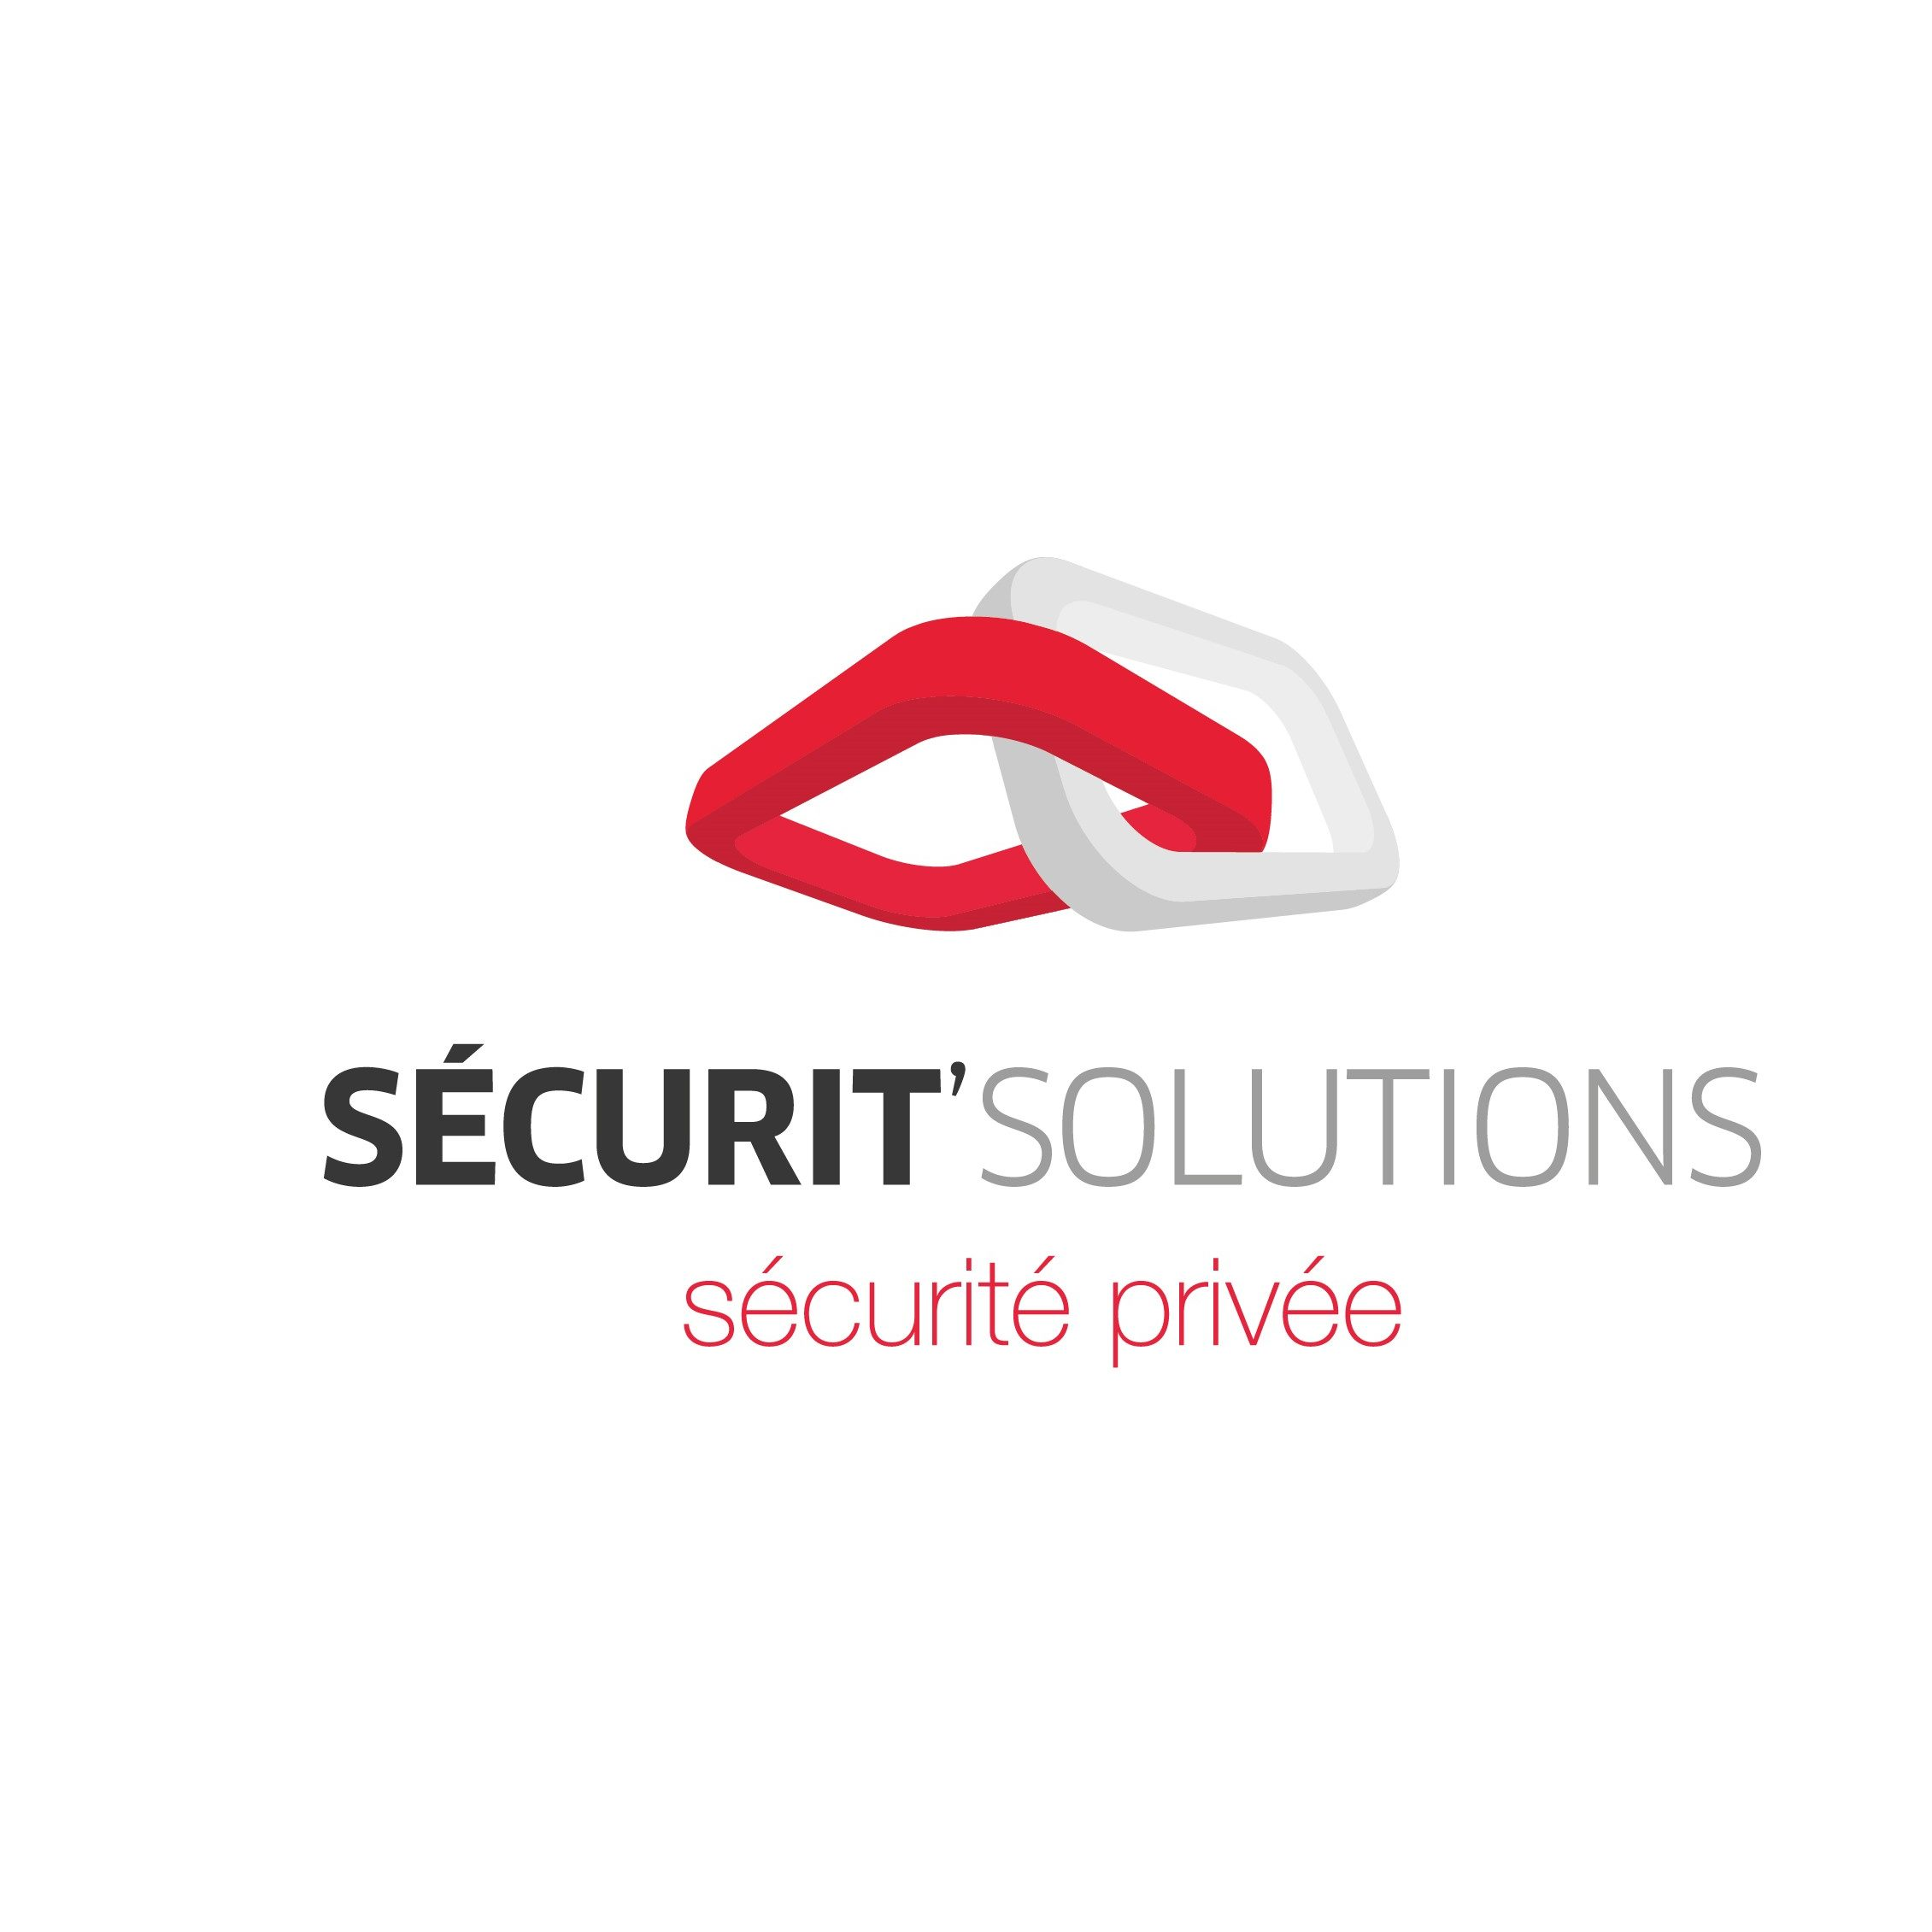 logo securit solutions